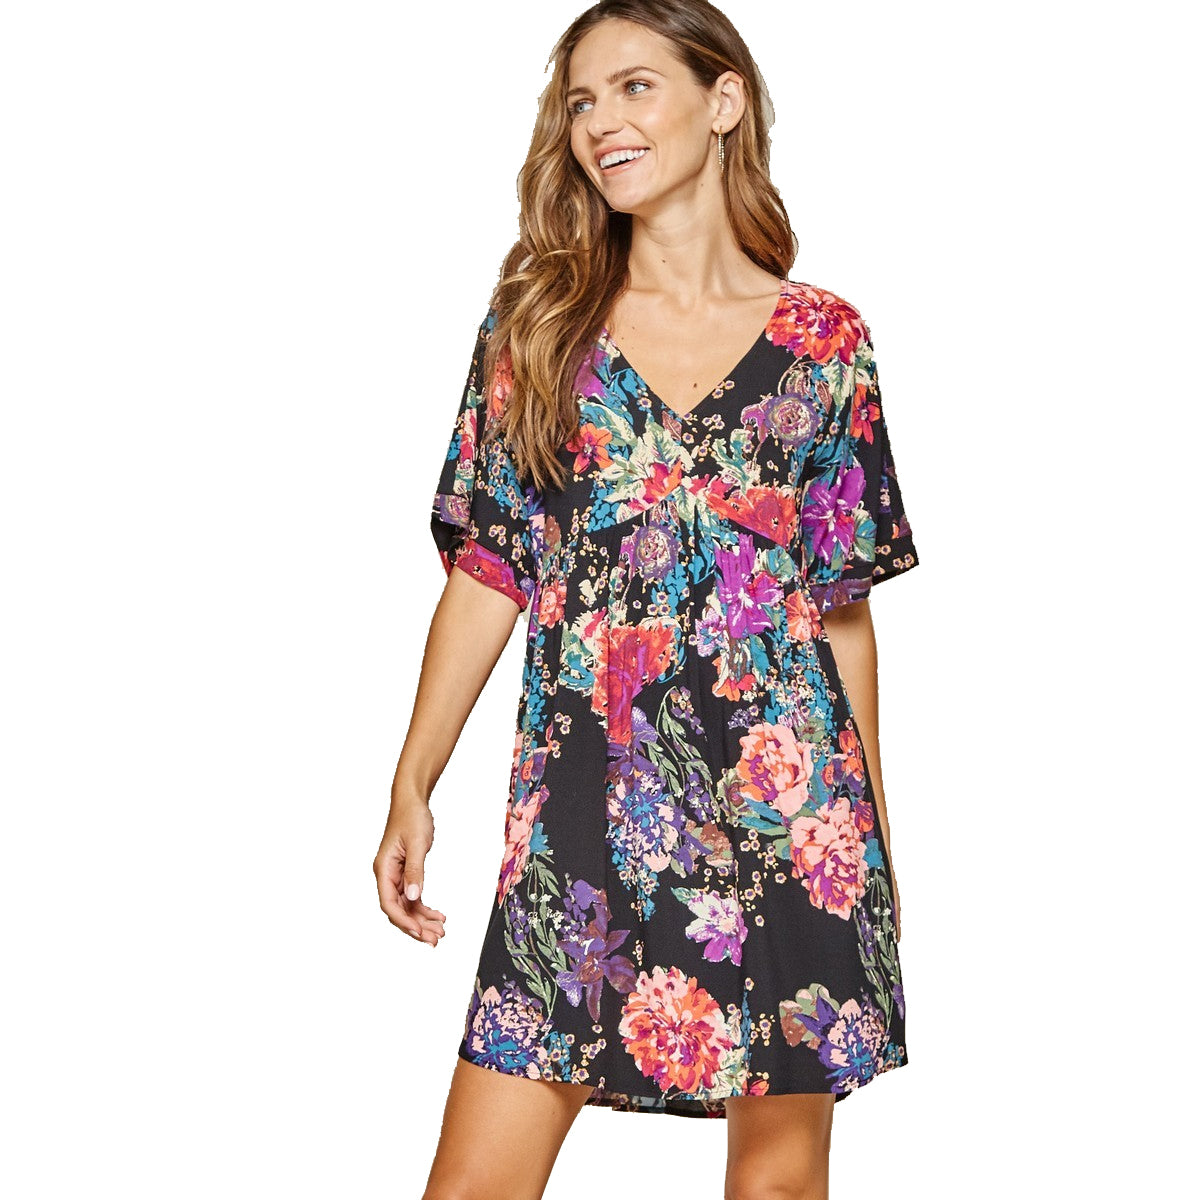 Andree by Unit Women's Floral Print Short Sleeve Dress - Black